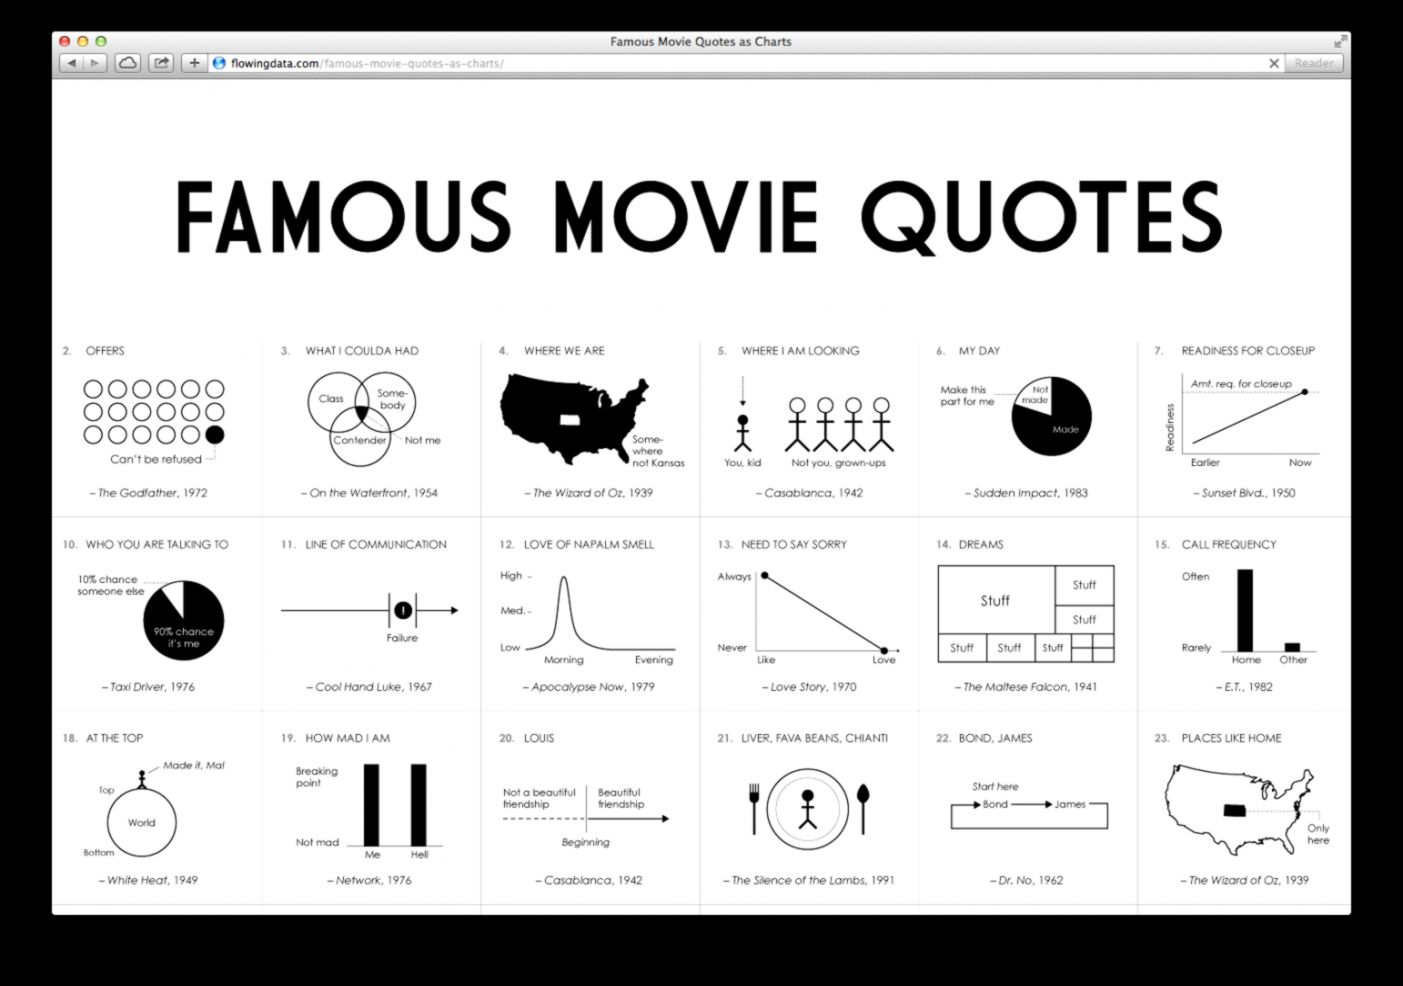 Famous Movie Quotes as Charts Images   ChurchMag